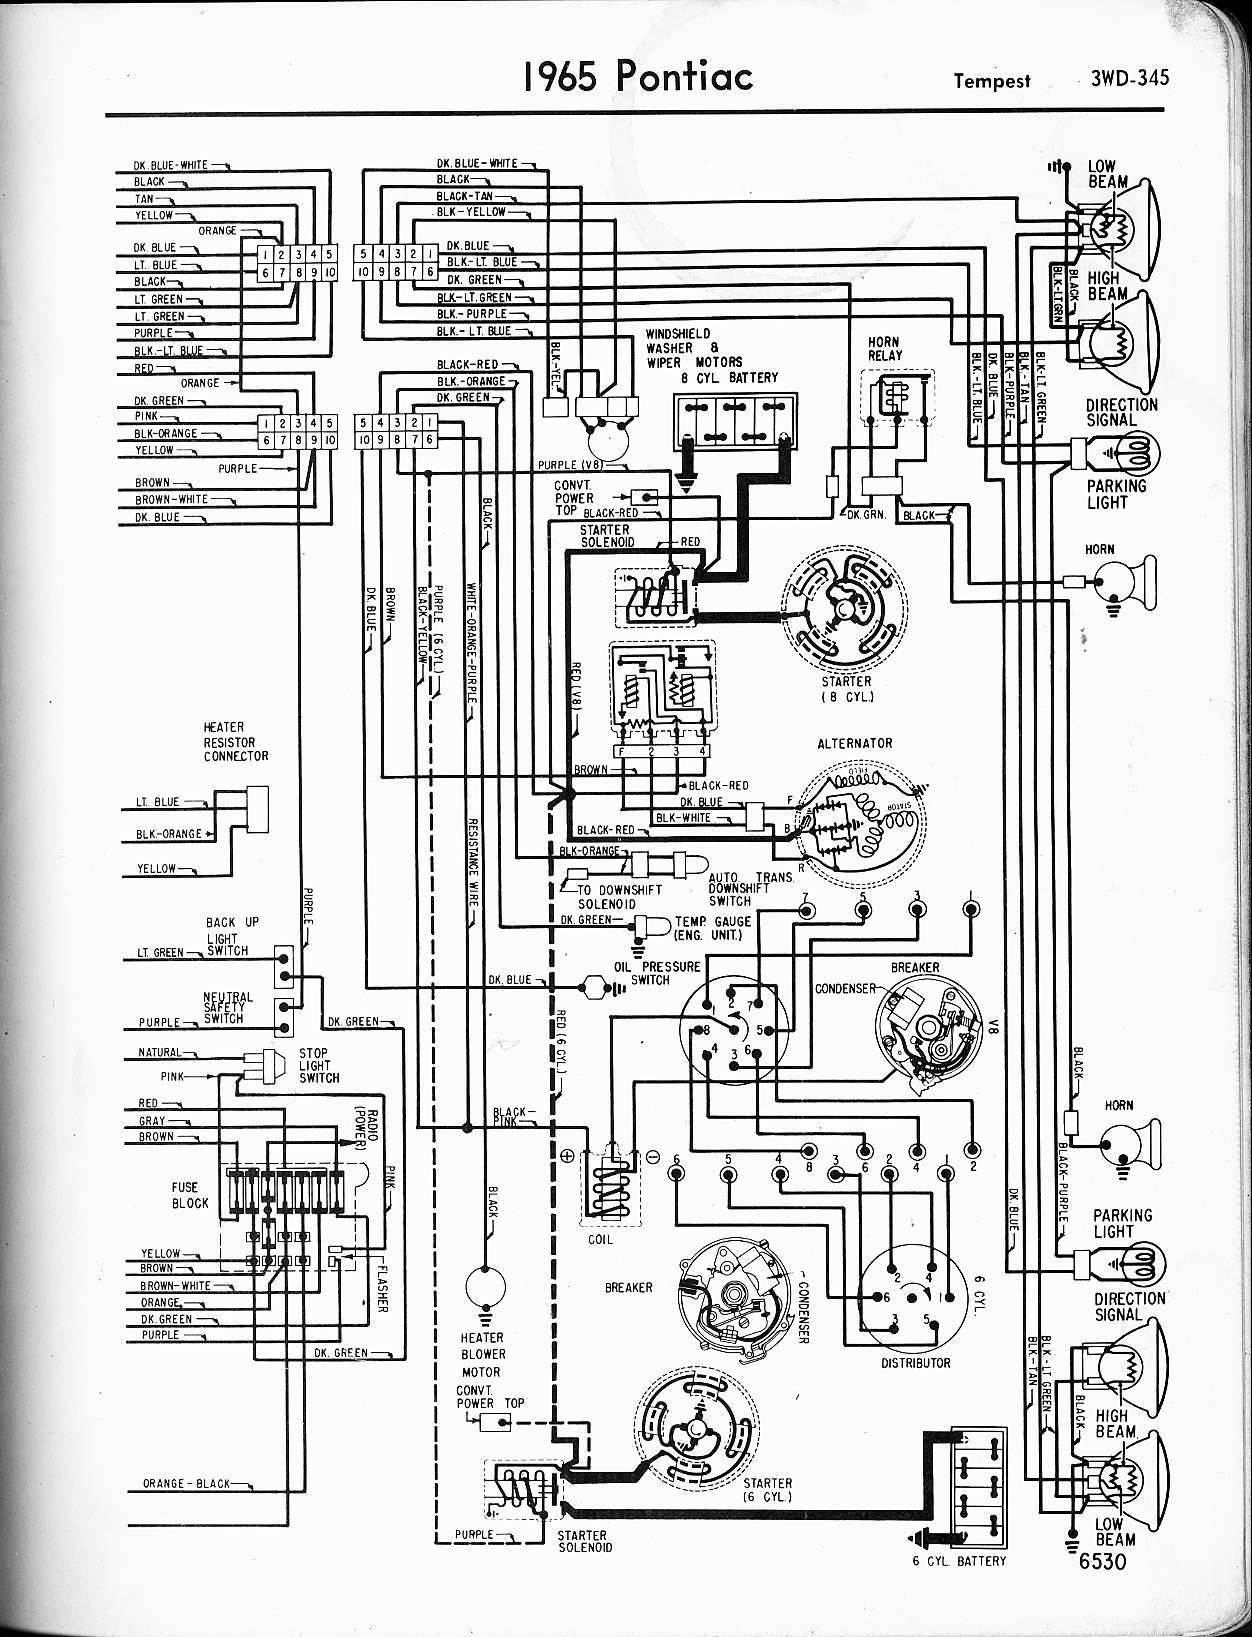 [QNCB_7524]  1969 Dodge A100 Wiring Diagram 02 Ford F550 Headlight Wiring Diagrams -  kelutum.art-40.autoprestige-utilitaire.fr | 1966 Gto Fuse Box Diagram |  | Wiring Diagram and Schematics